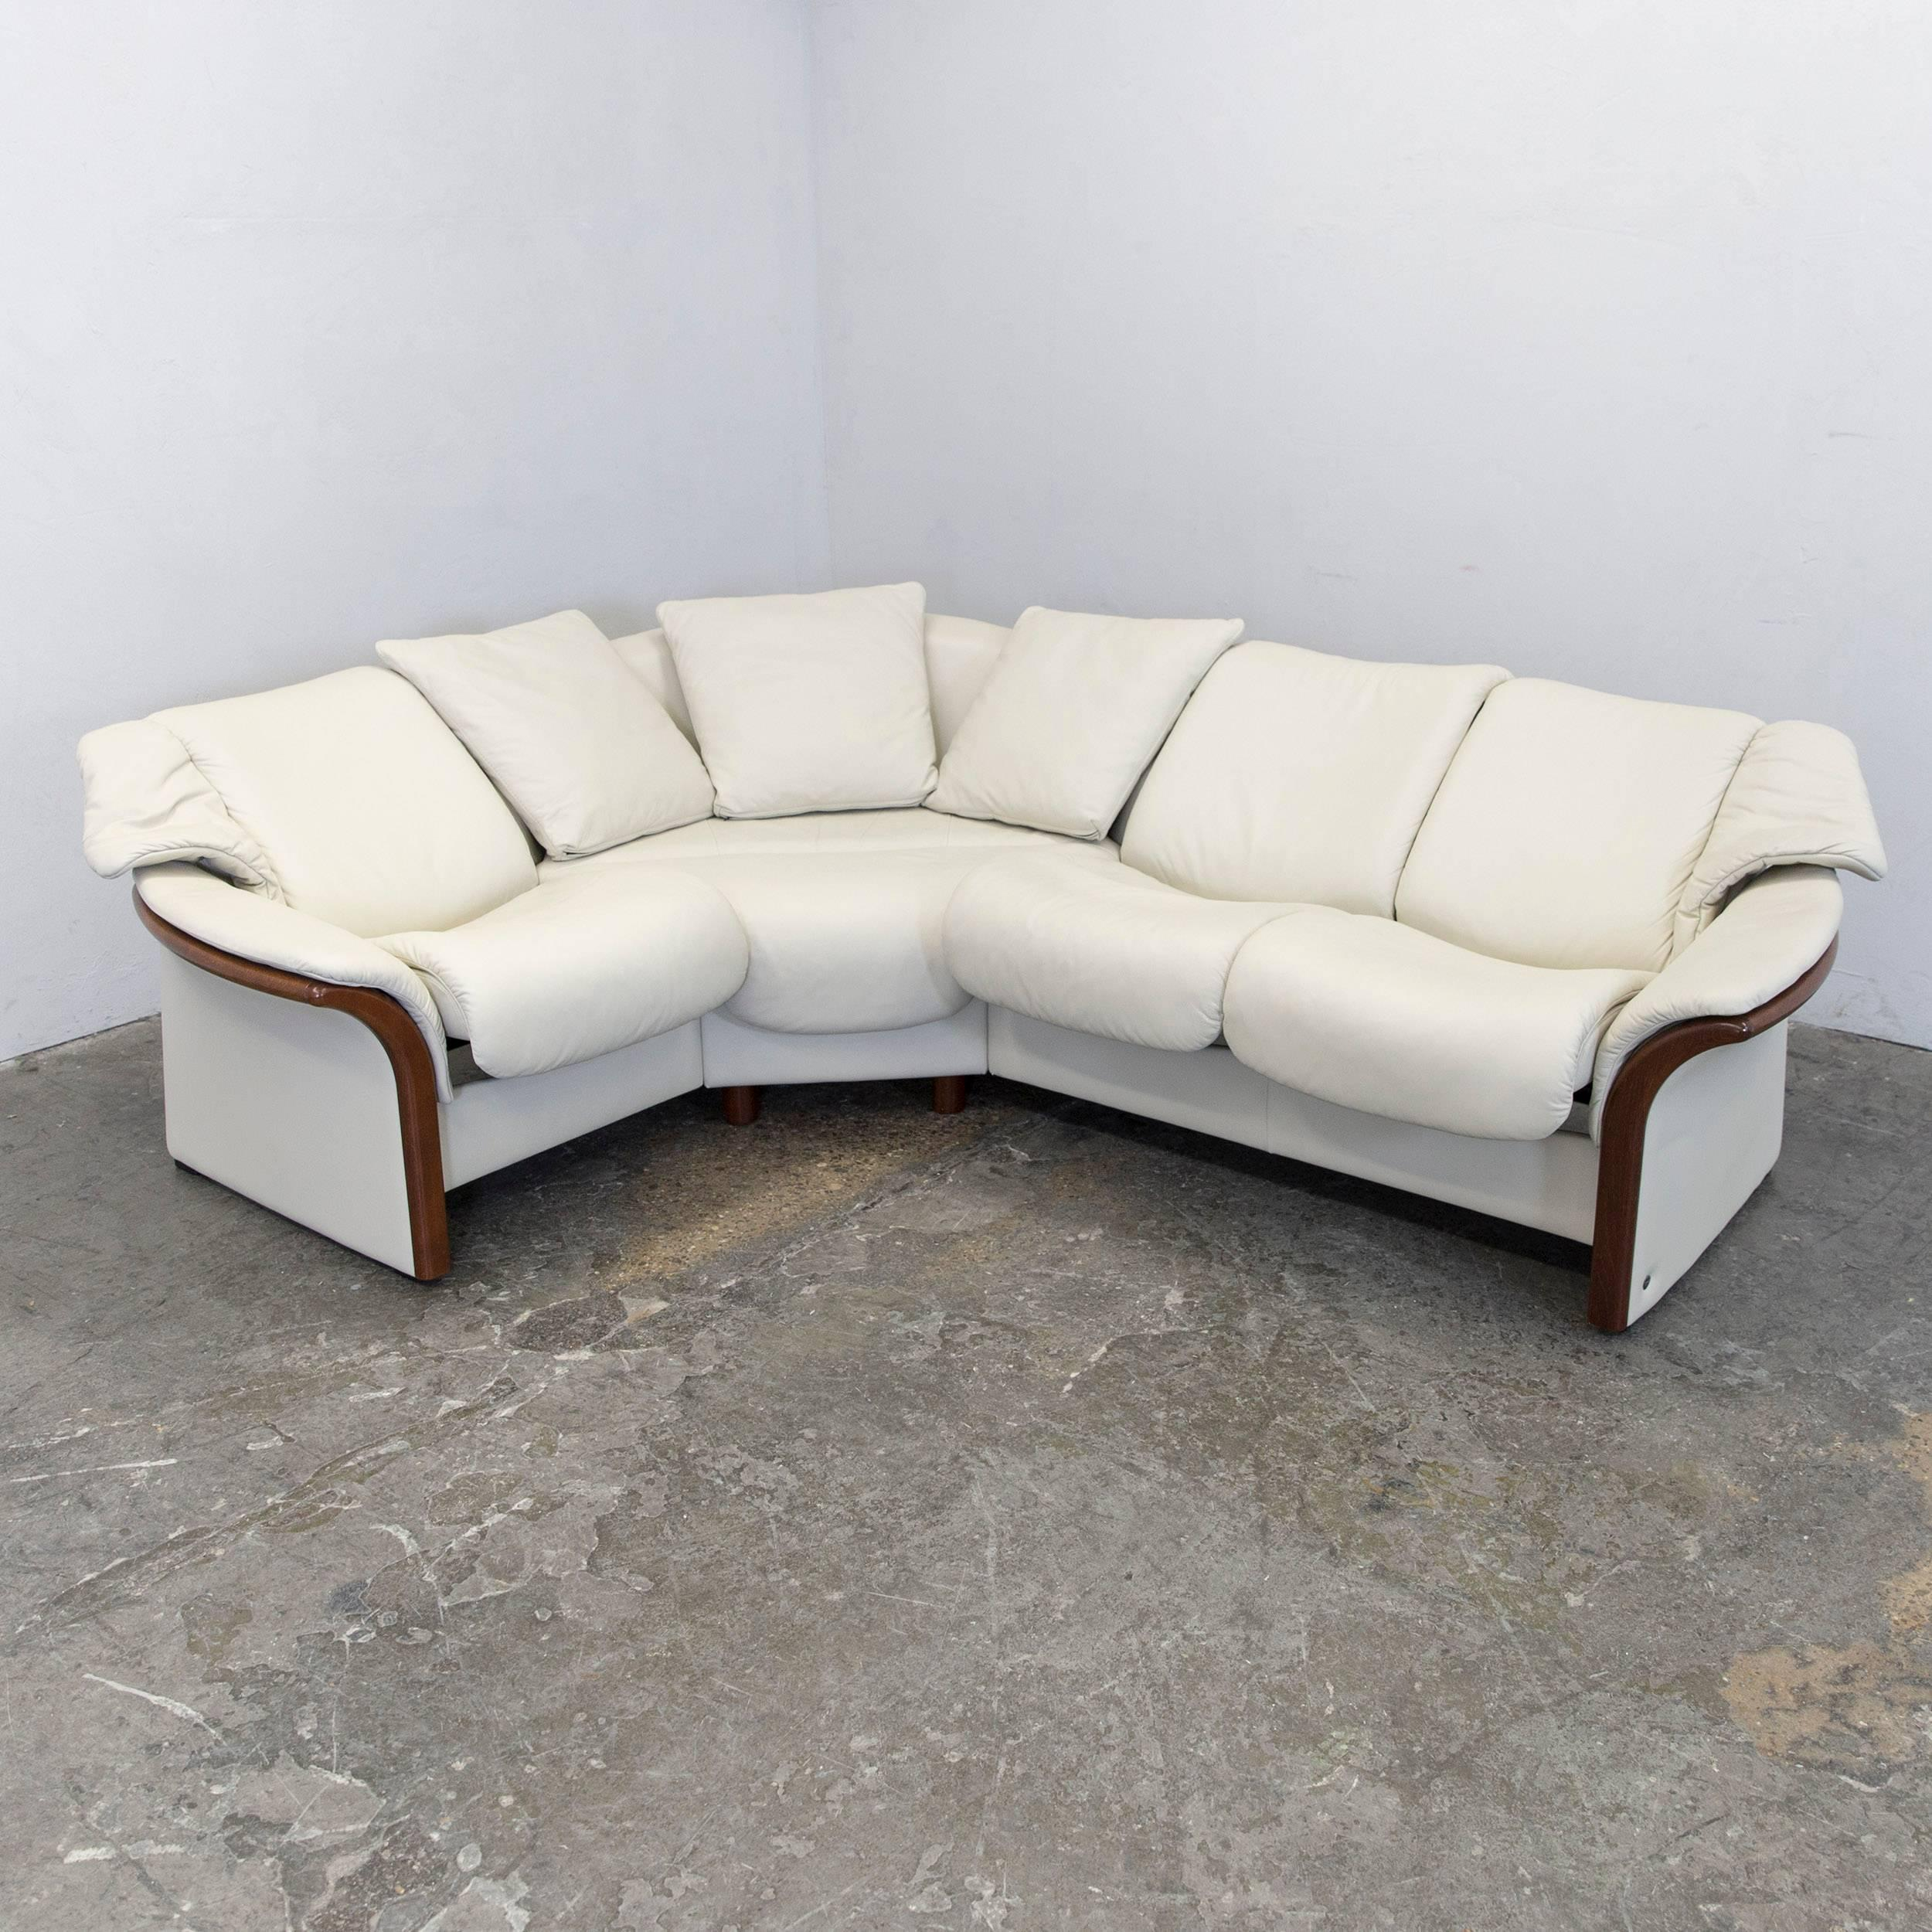 Saporiti Sessel Ekornes Stressless Designer Corner Sofa Beige Leather